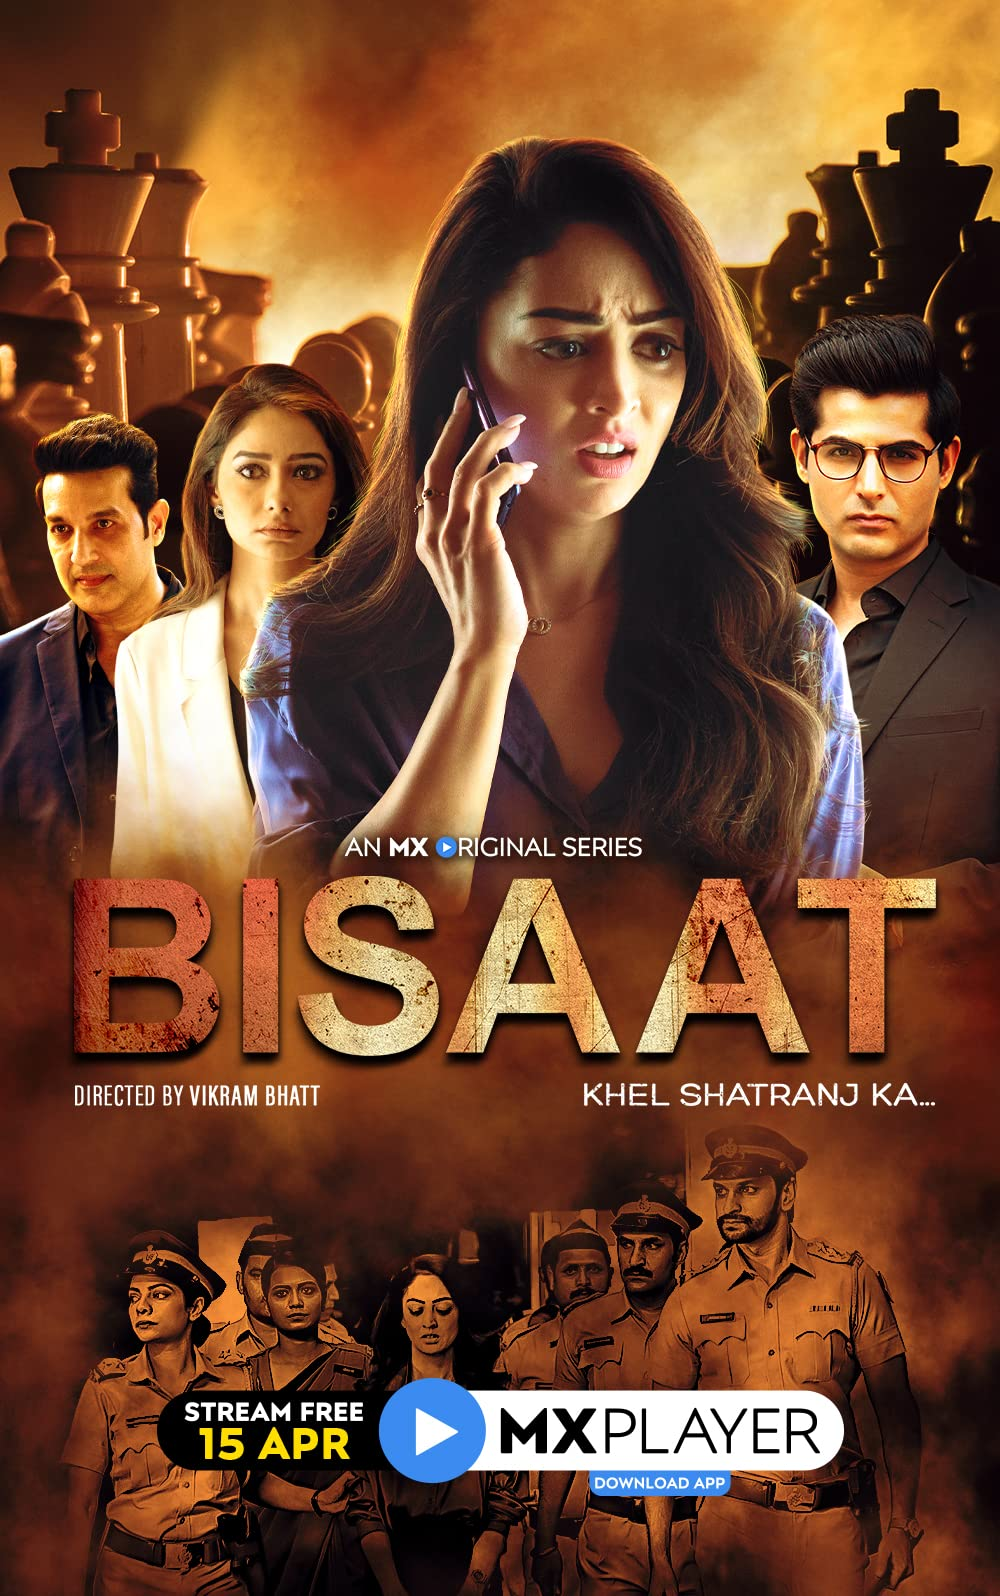 18+ Bisaat Khel Shatranj Ka 2021 S01 Hindi MX Original Complete Web Series 720p HDRip 900MB Download